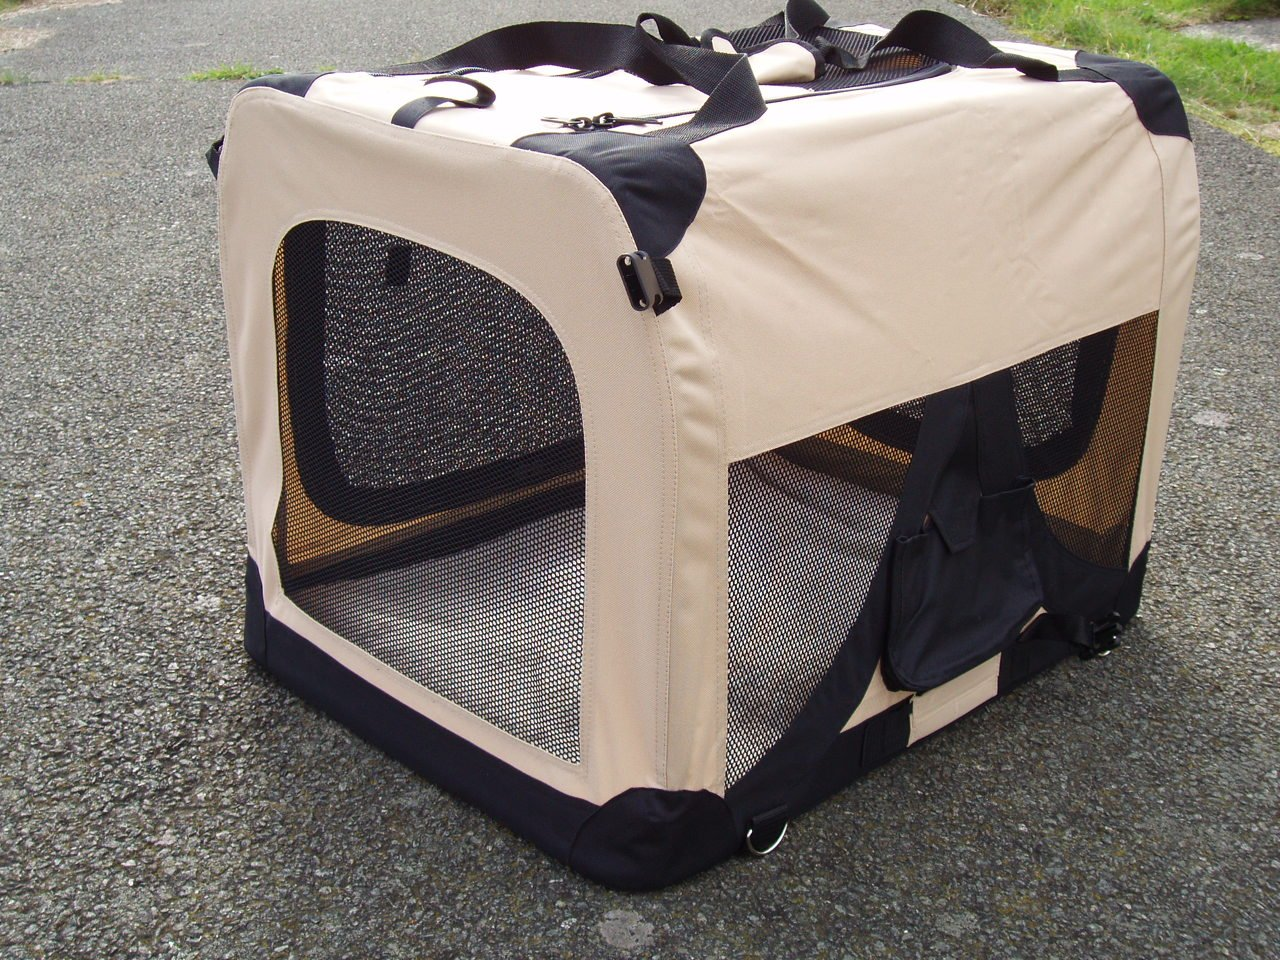 extra large dog crate folding fabric oxford d beige xl cm  - extra large dog crate folding fabric oxford d beige xl cm vehicleisofix anchor points for the ultimate in safety free zipped fleece liner